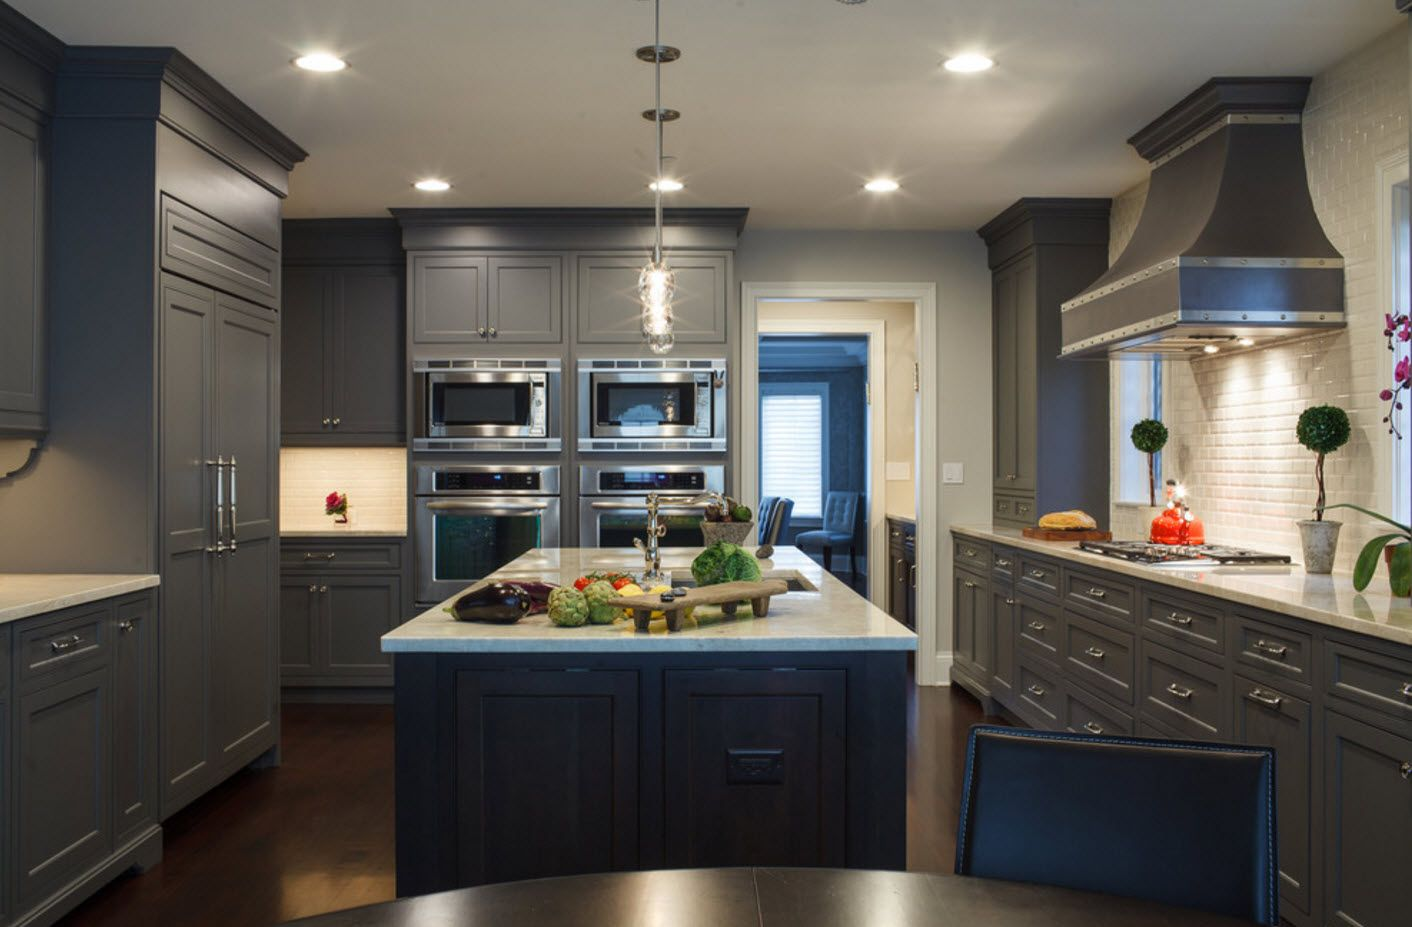 Kitchen interior in shades of gray